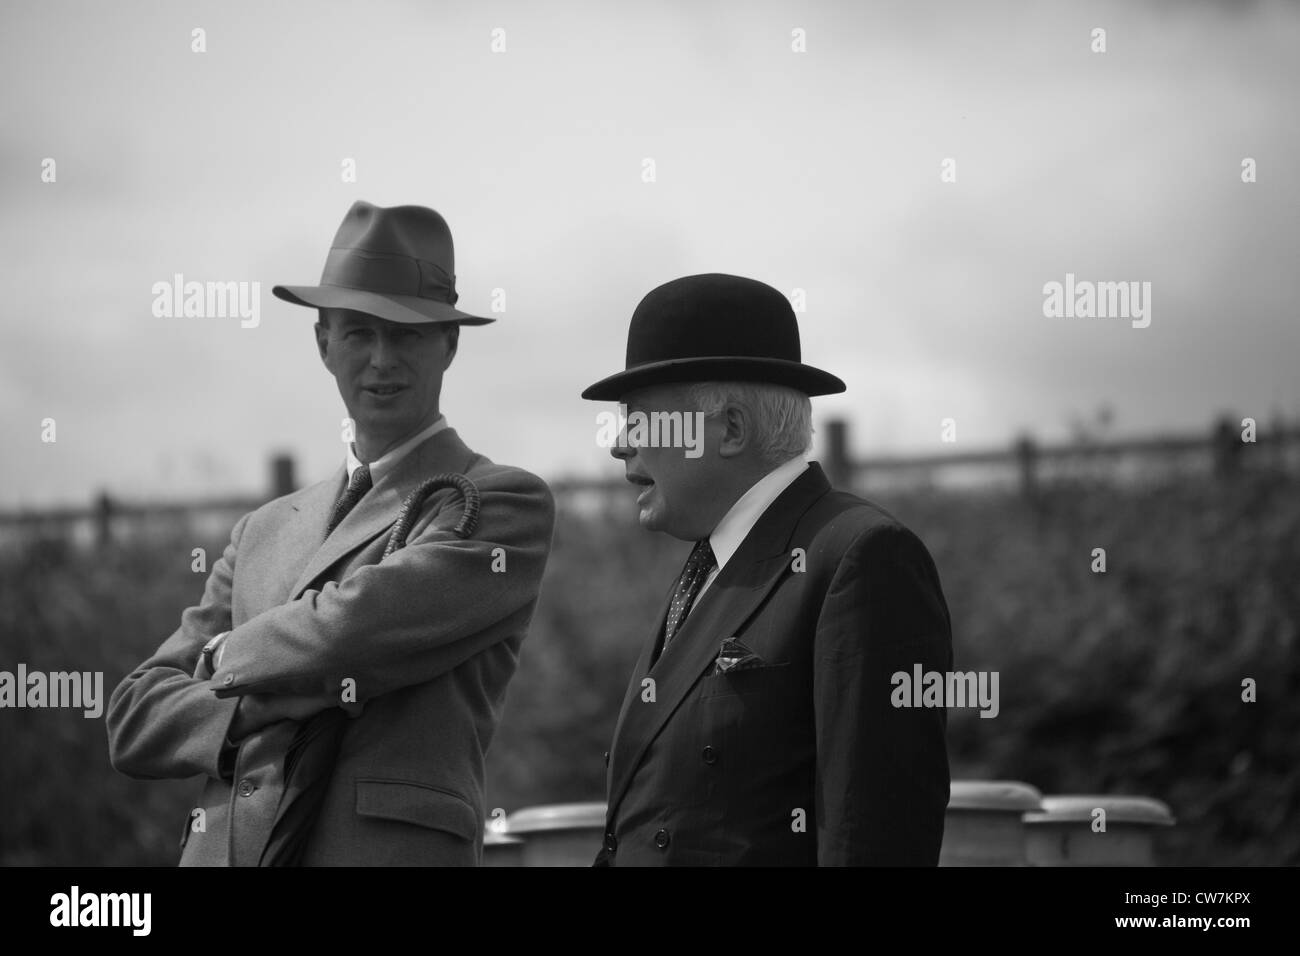 Gentlemen having a Morning Chat whilst waiting for the train. - Stock Image